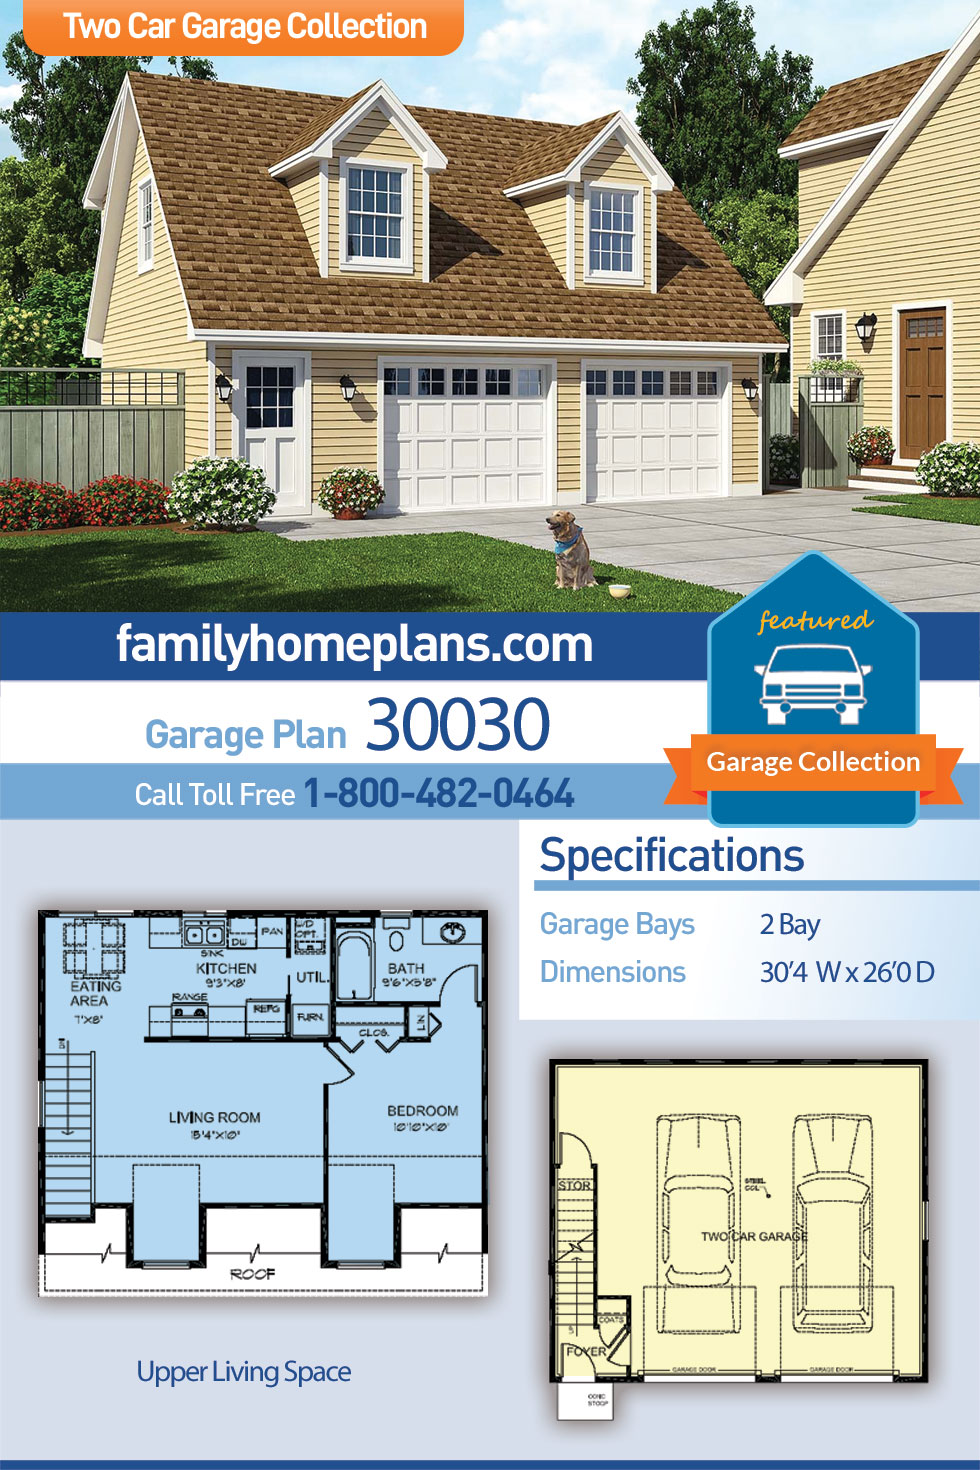 Cape Cod, Cottage, Country, Farmhouse, Saltbox 2 Car Garage Apartment Plan 30030 with 1 Beds, 1 Baths